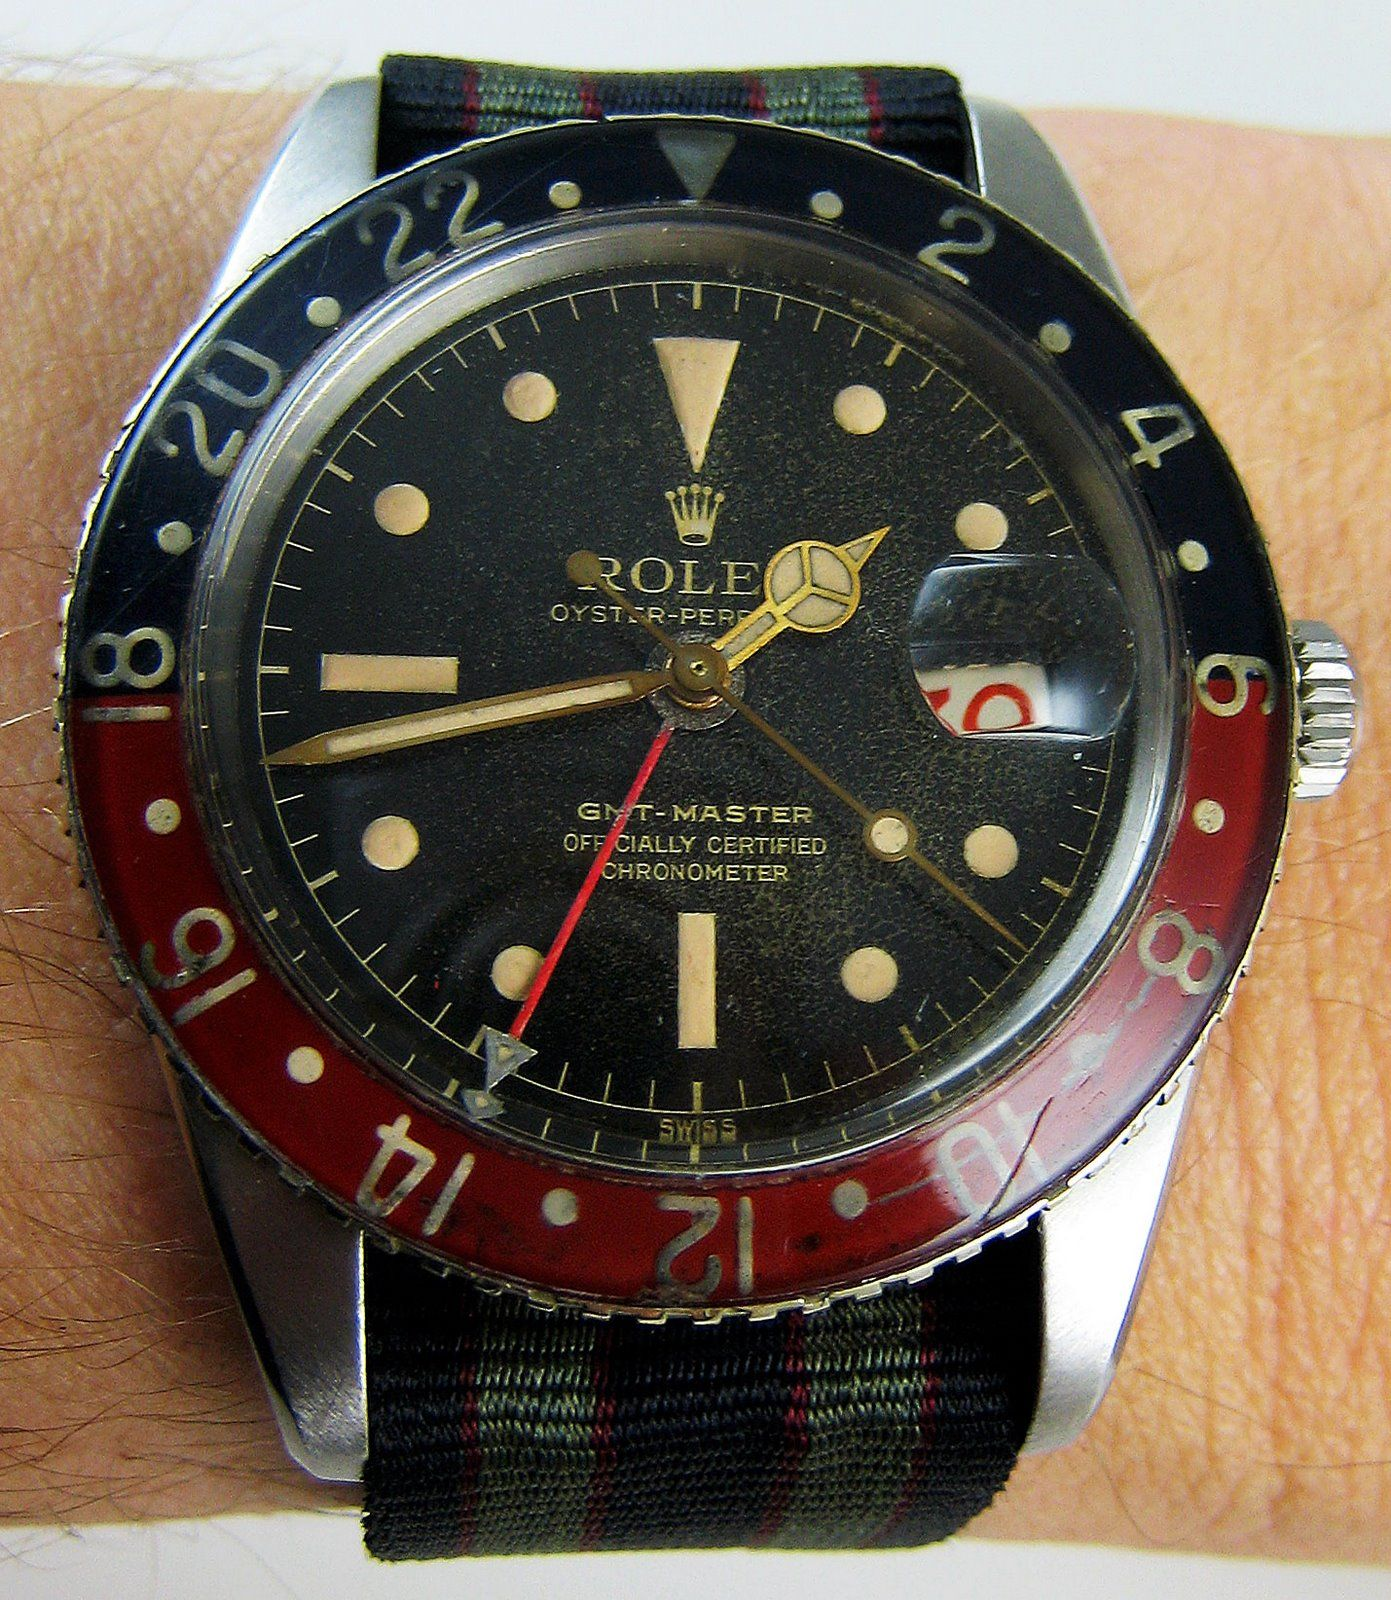 8e19092e2e7 Welcome To RolexMagazine.com...Home Of Jake's Rolex World Magazine..Optimized  for iPad and iPhone: The Real James Bond Watchstrap Comes To Life